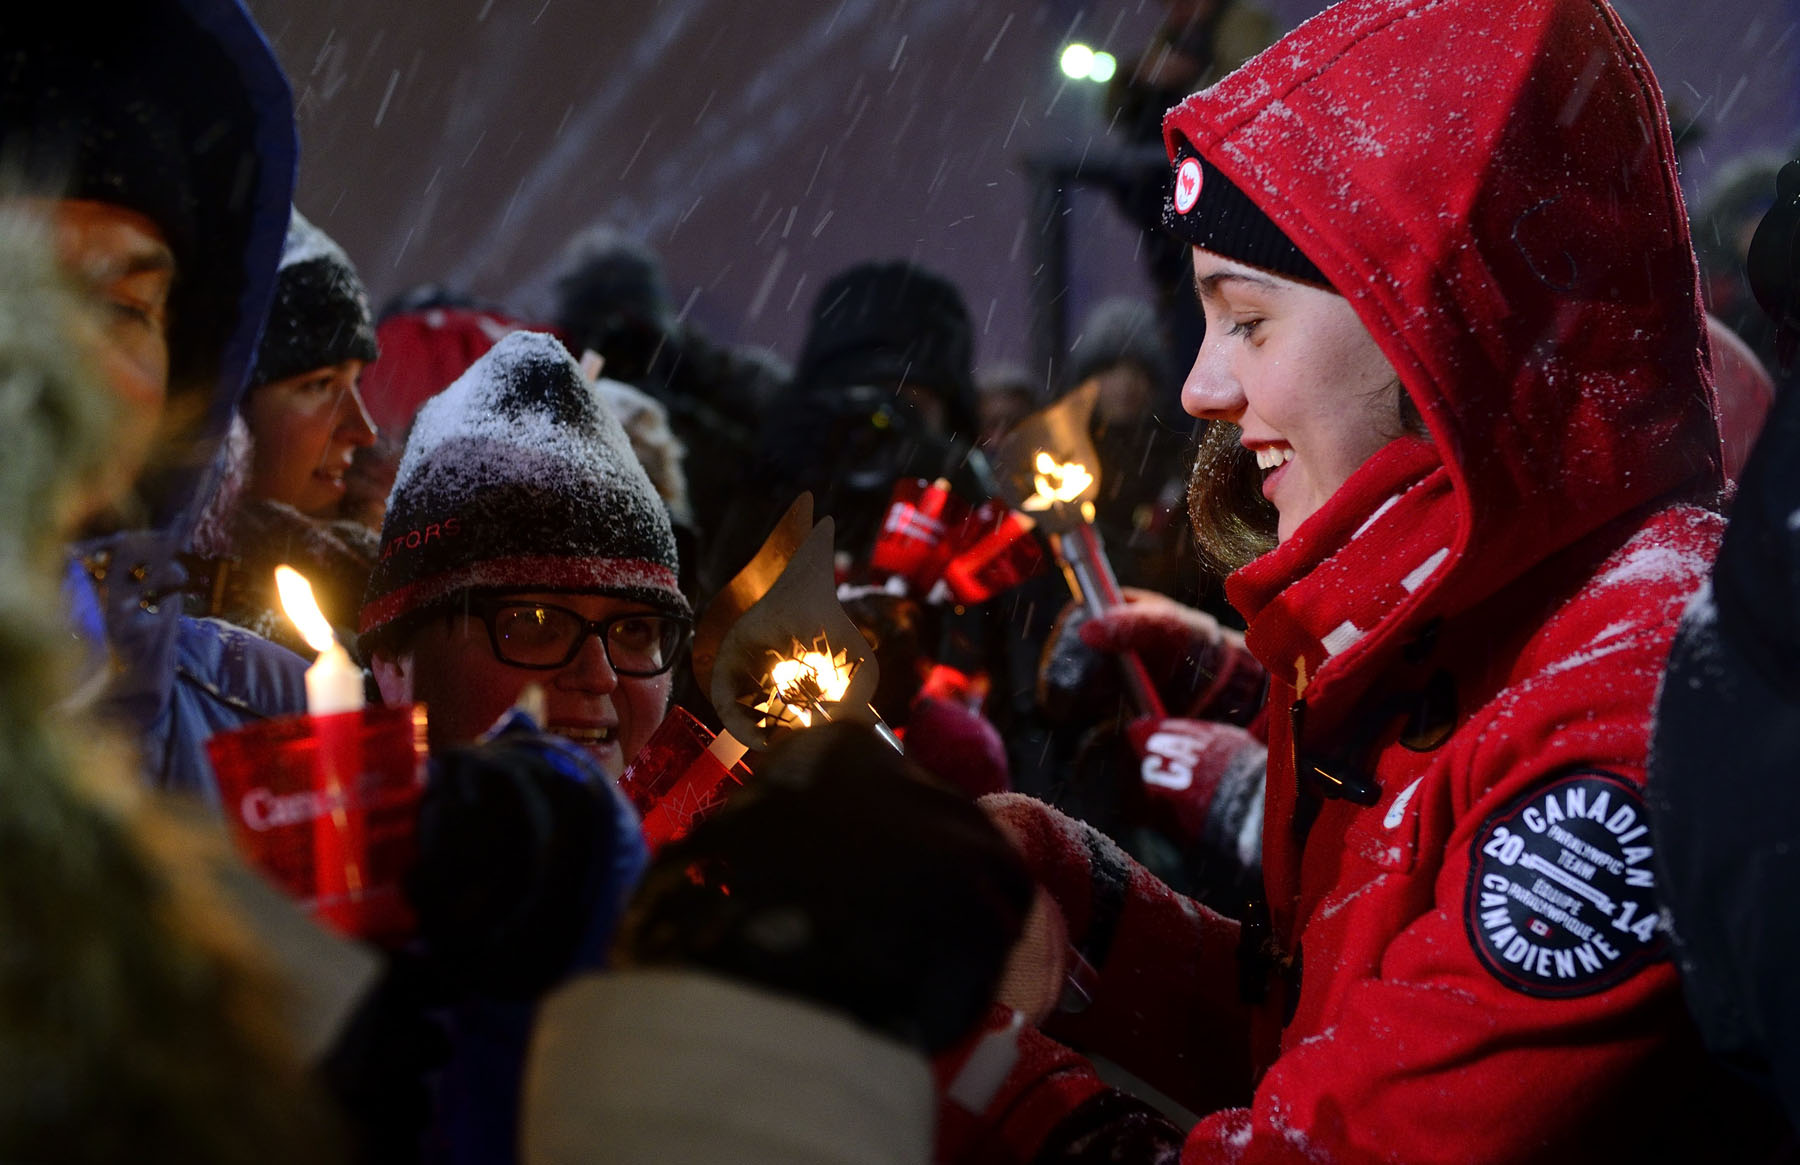 Later, Canadian swimmer Aurélie Rivard shared the fire of friendship with the public around the Centennial Flame.